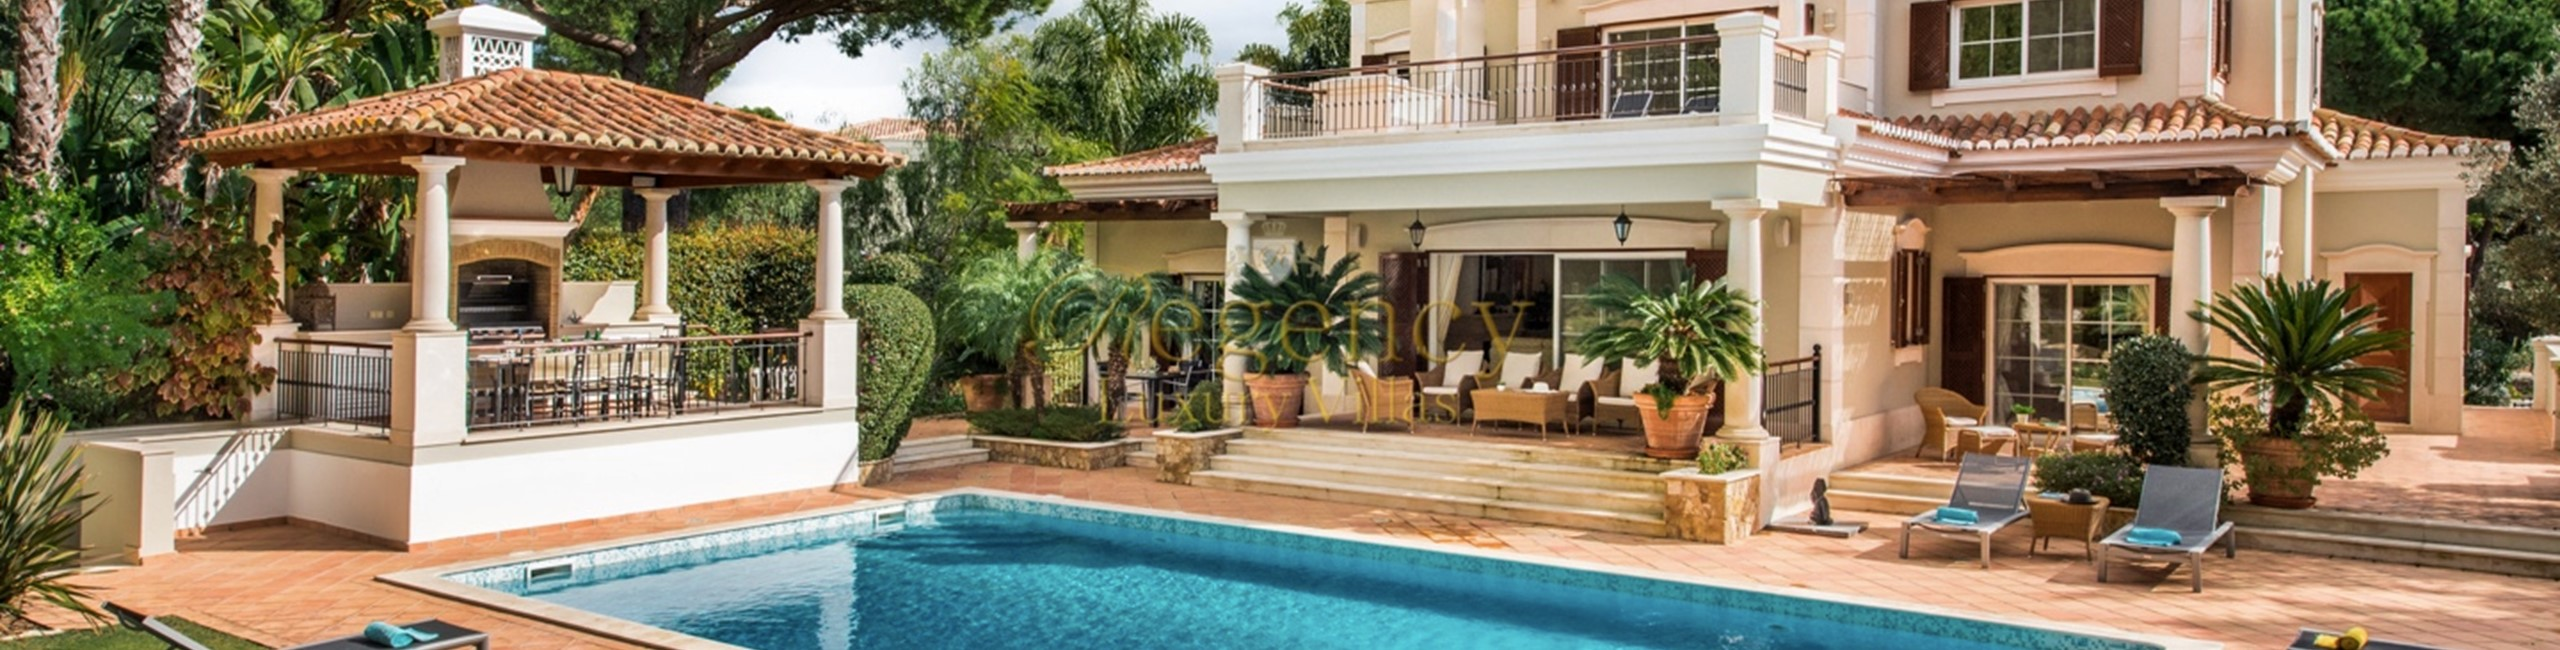 Luxury 5 Bedroom Villa To Rent In Quinta Do Lago